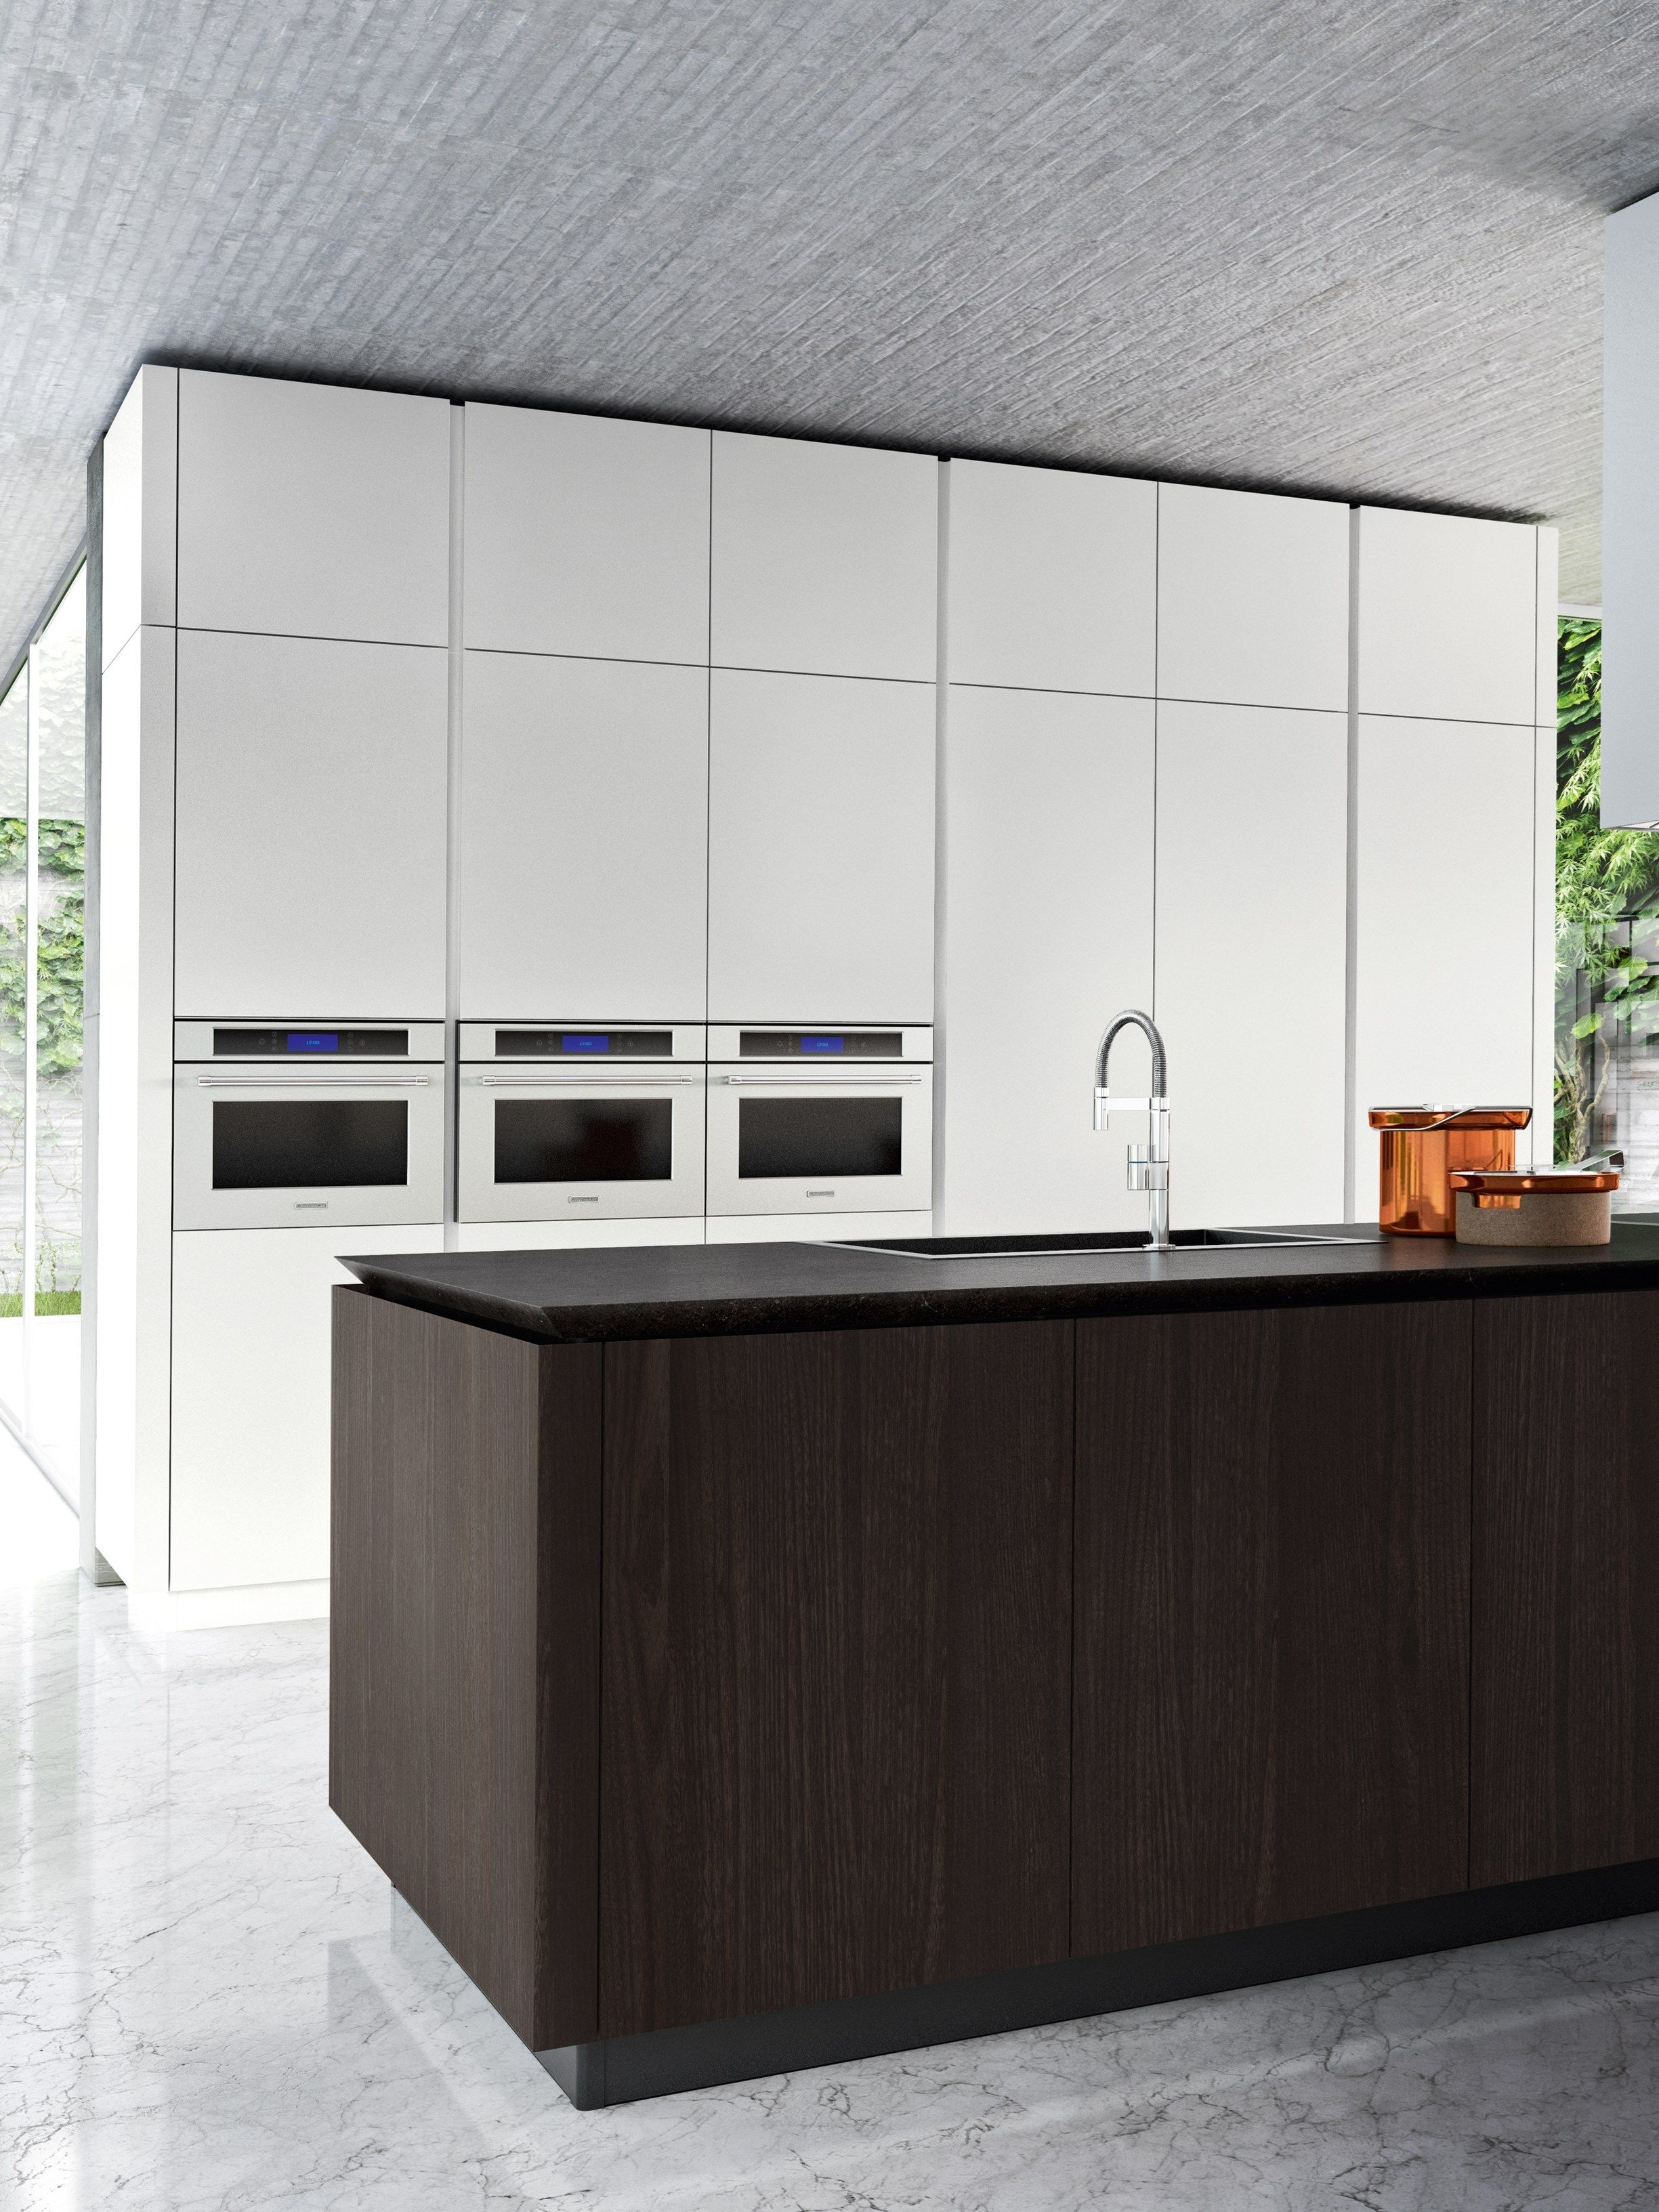 Kitchen with island IDEA by @snaiderocucine | Int. Kitchen ...